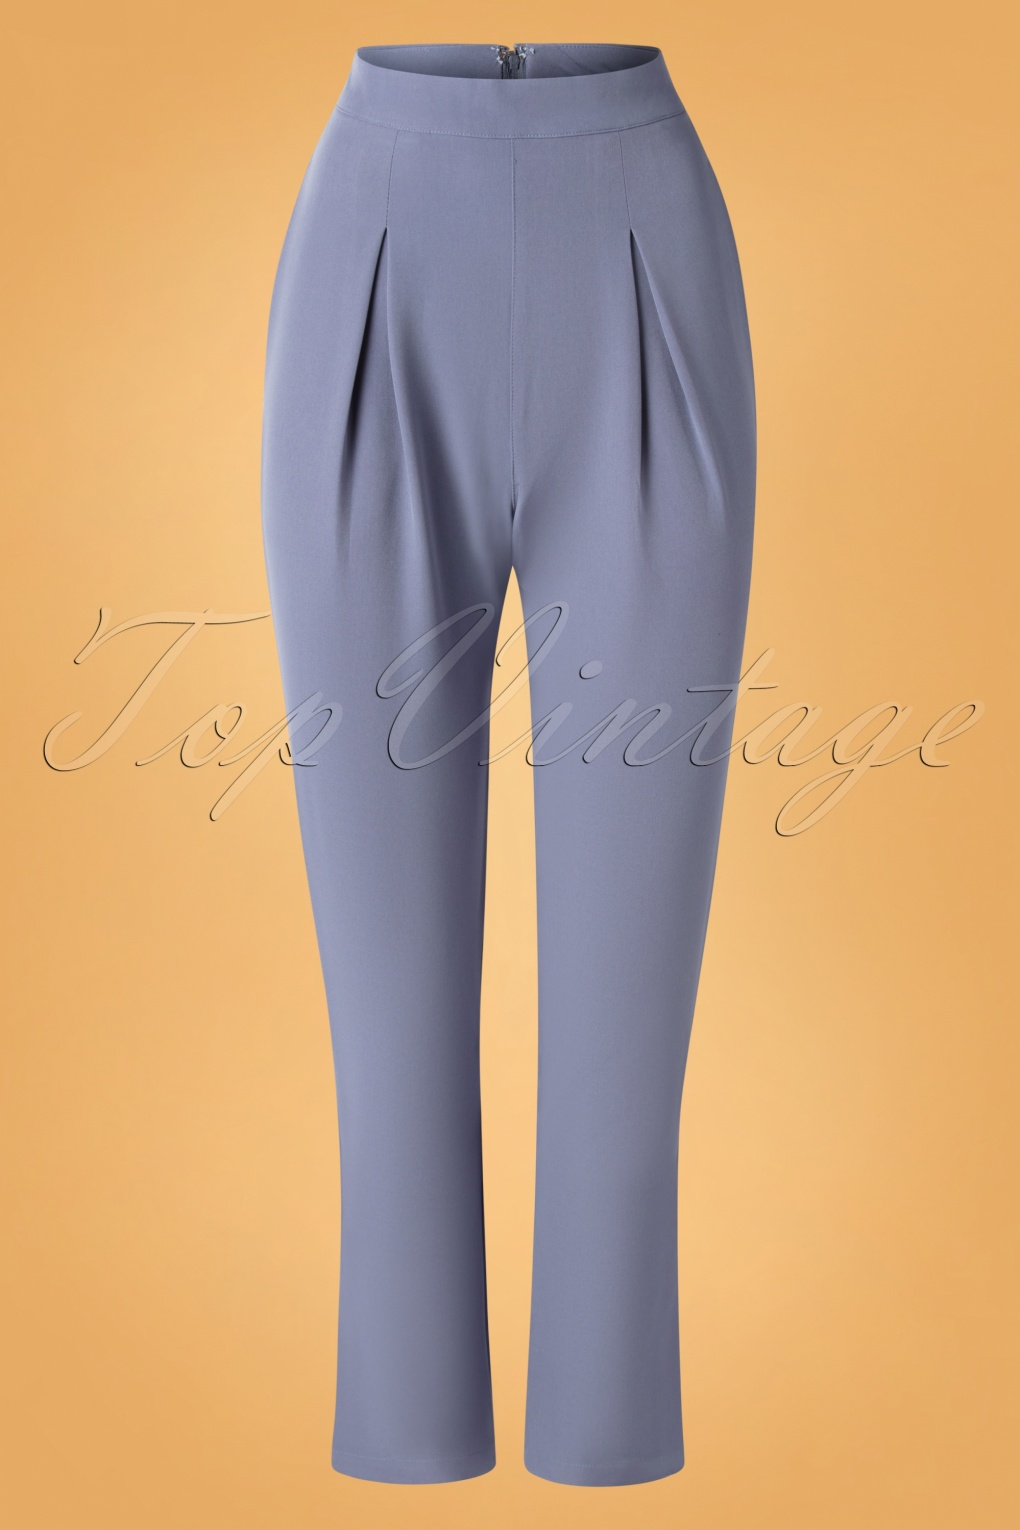 Vintage Inspired Dresses & Clothing UK 50s Wear Me Everywhere Trousers in Dusty Blue £37.39 AT vintagedancer.com